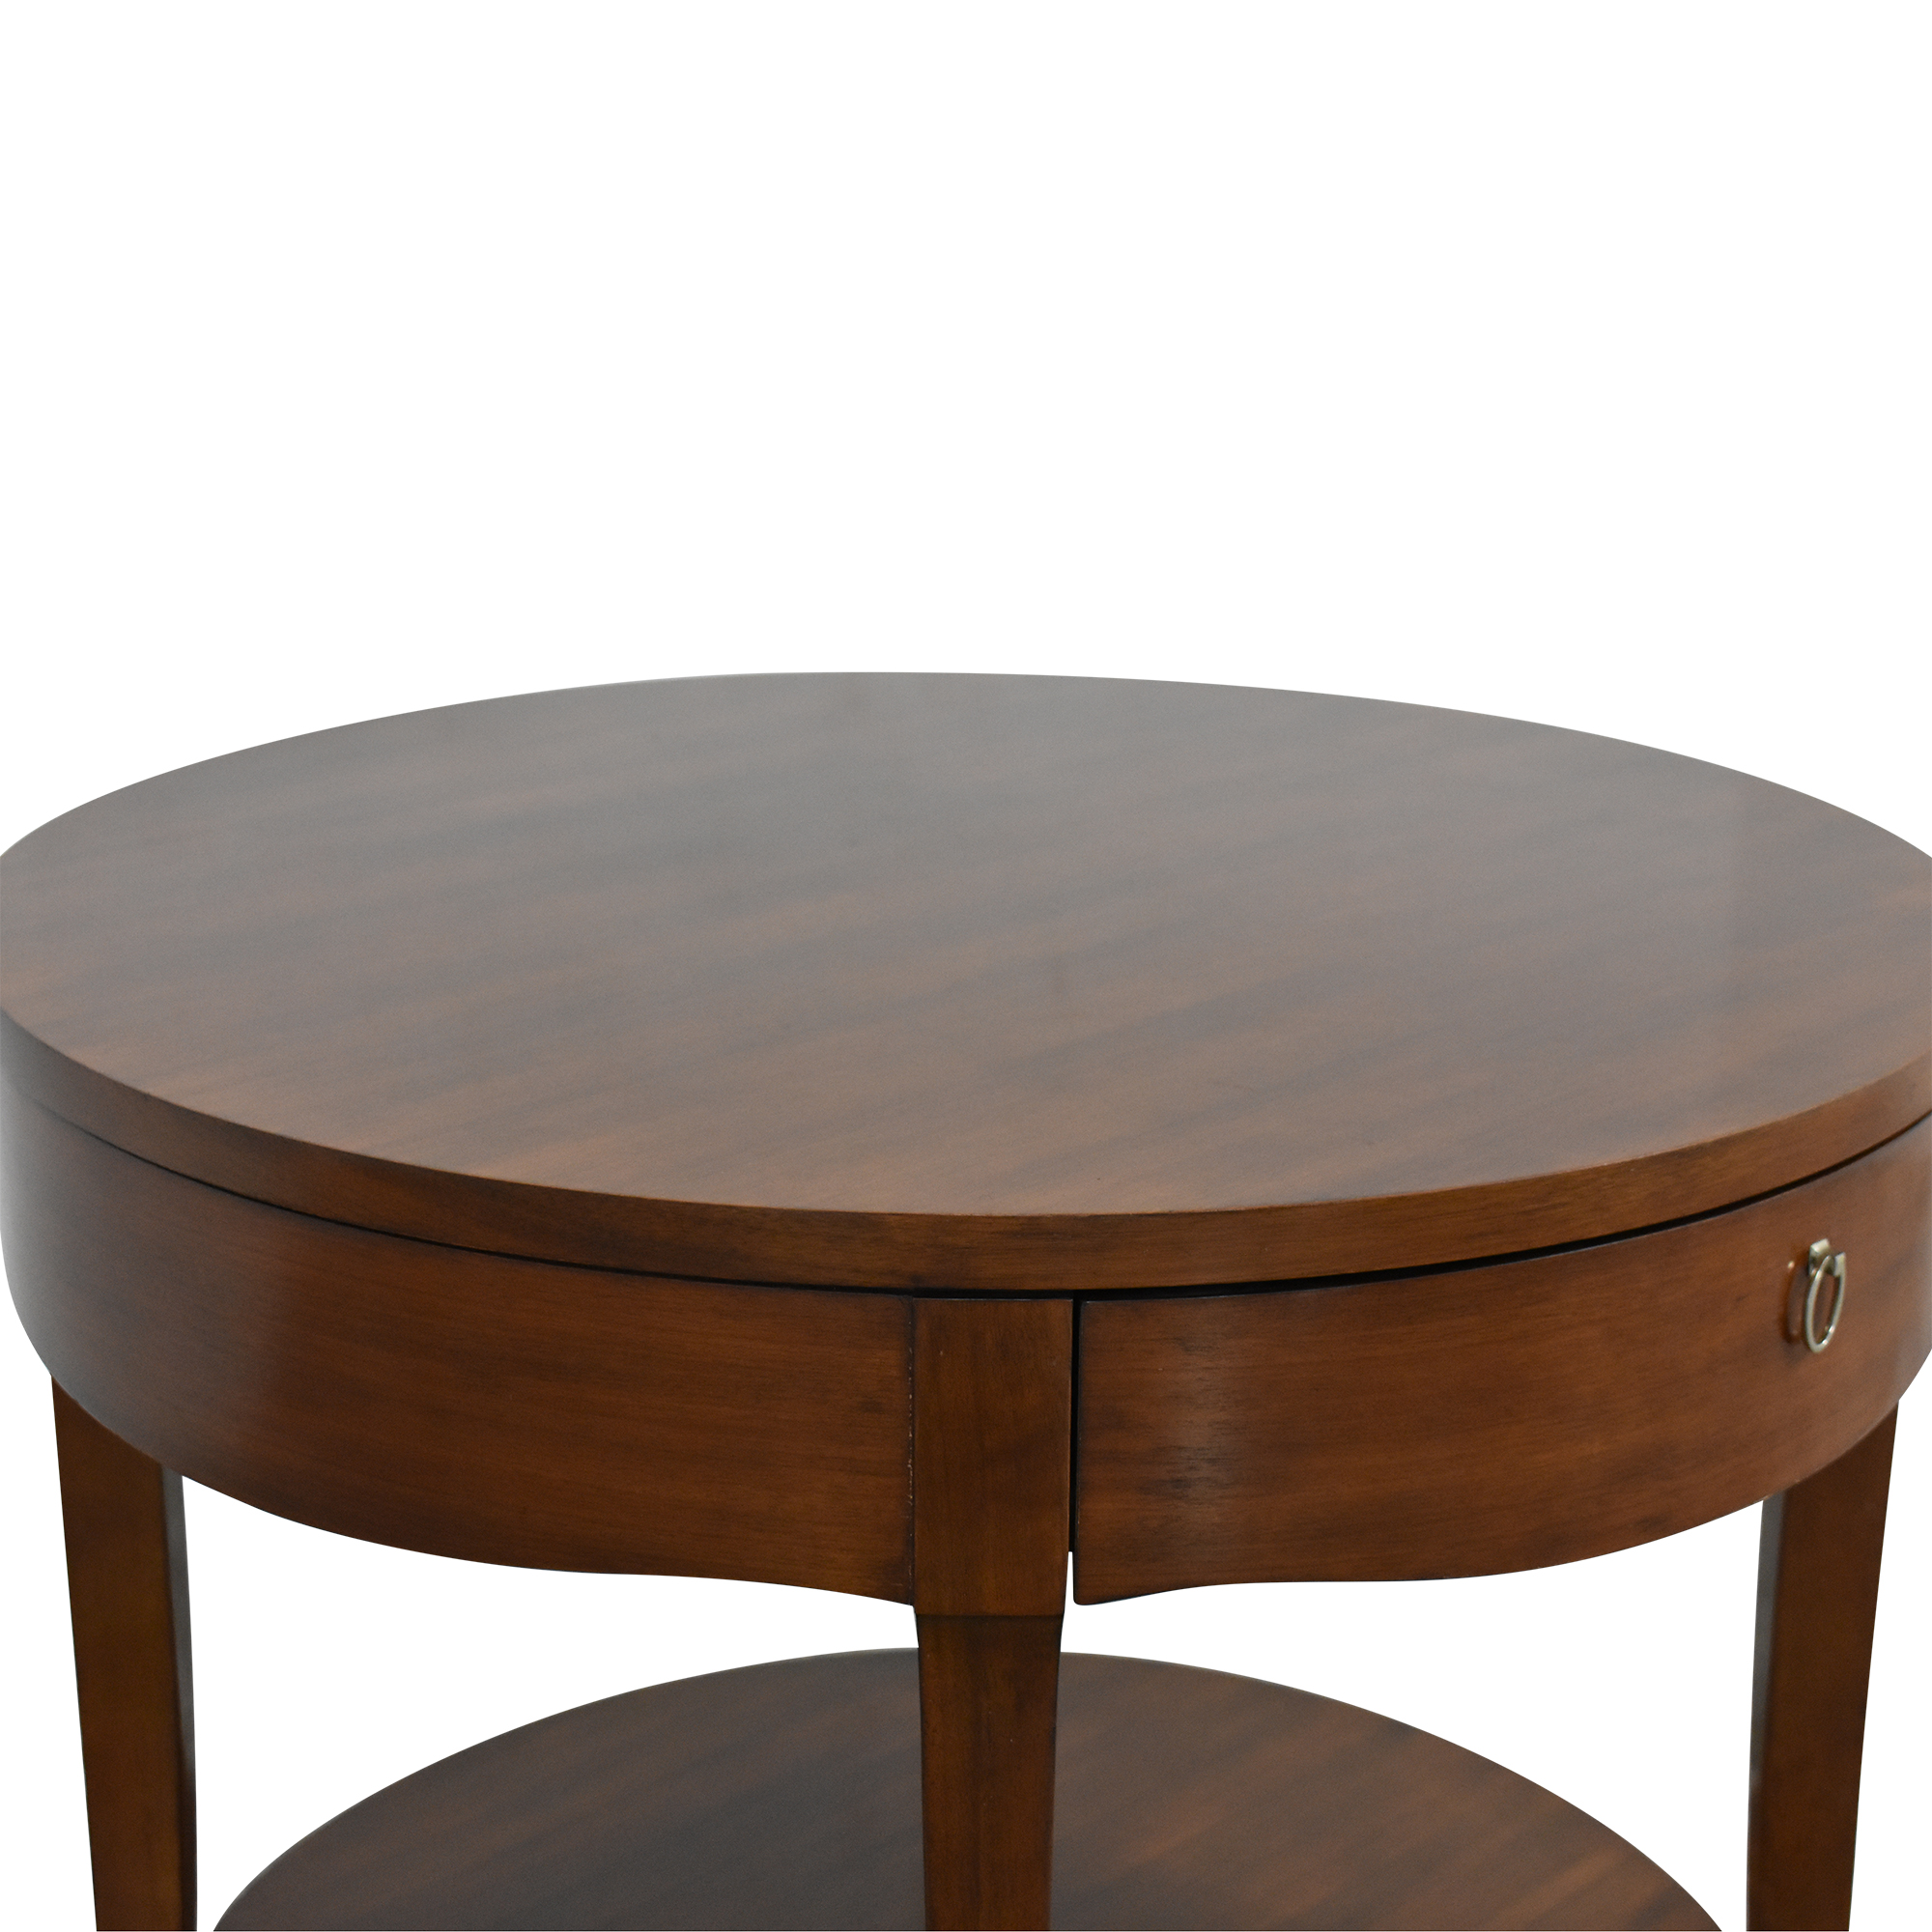 Henredon Furniture Henredon Furniture Round End Table with Drawer nj